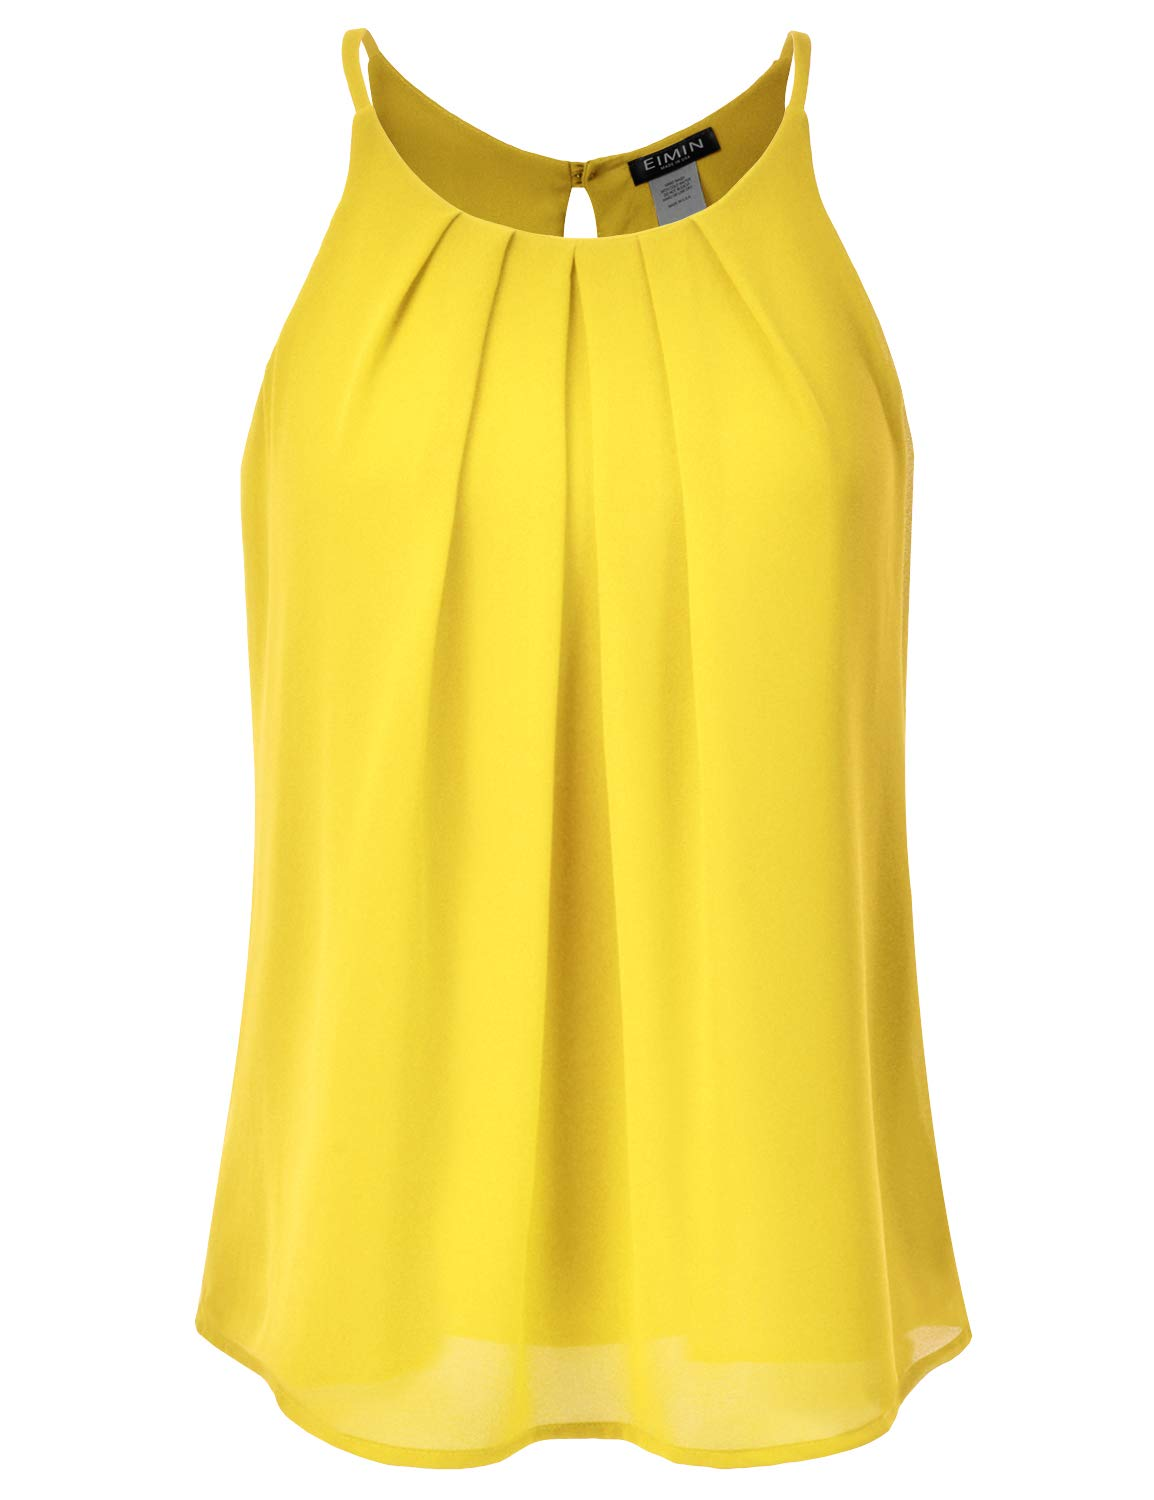 EIMIN Women's Crewneck Pleated Front Double Layered Chiffon Cami Tank Top Yellow 2XL